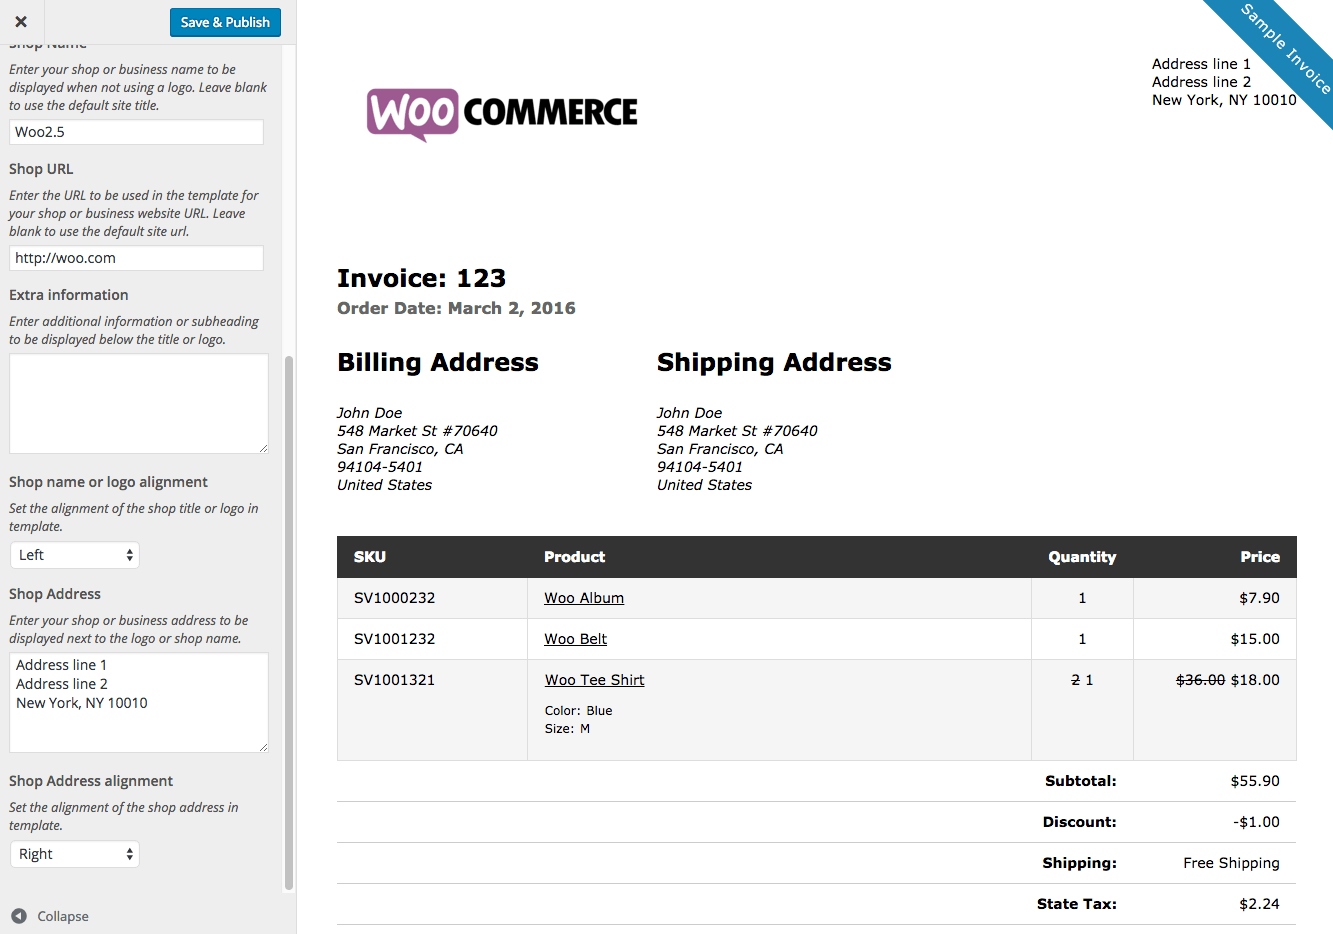 Angkajituus  Winning Woocommerce Print Invoices Amp Packing Lists  Woocommerce Docs With Interesting Woocommerce Print Invoices  Packing Lists Customizer With Beauteous Wordpress Invoicing Also Payroll Invoice In Addition How Do You Send A Paypal Invoice And Invoice Template Free Printable As Well As Billing And Invoicing Software Additionally Google Docs Template Invoice From Docswoocommercecom With Angkajituus  Interesting Woocommerce Print Invoices Amp Packing Lists  Woocommerce Docs With Beauteous Woocommerce Print Invoices  Packing Lists Customizer And Winning Wordpress Invoicing Also Payroll Invoice In Addition How Do You Send A Paypal Invoice From Docswoocommercecom